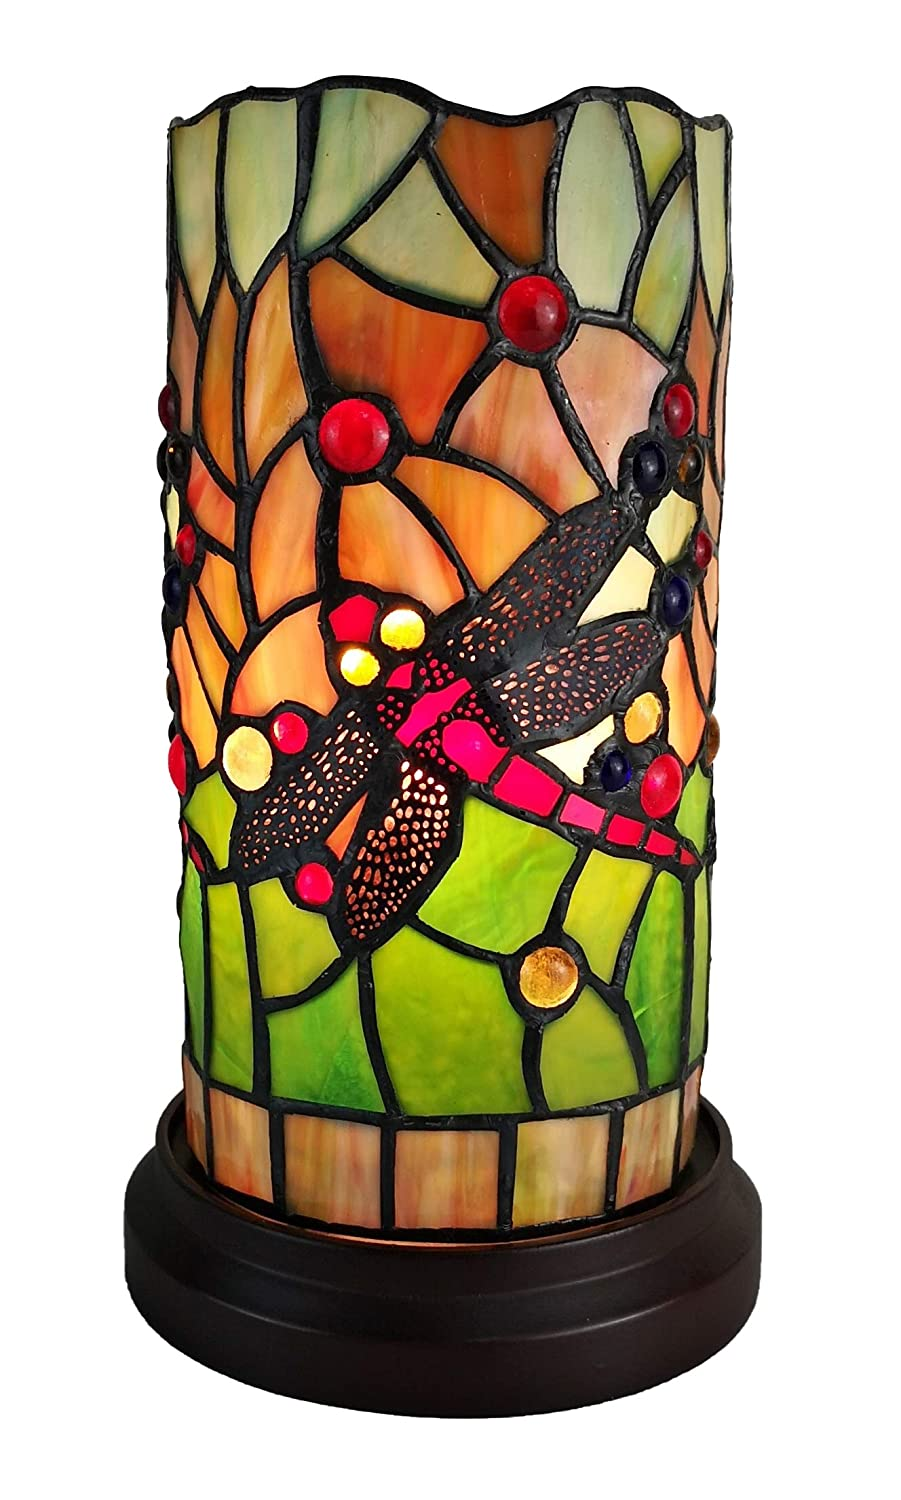 "Amora Lighting Tiffany Style Accent Lamp 10"" Tall Stained Glass Yellow Red Dragonfly Floral Vintage Antique Light Decor Nightstand Living Room Bedroom Gift AM1015ACCB, Multicolor"